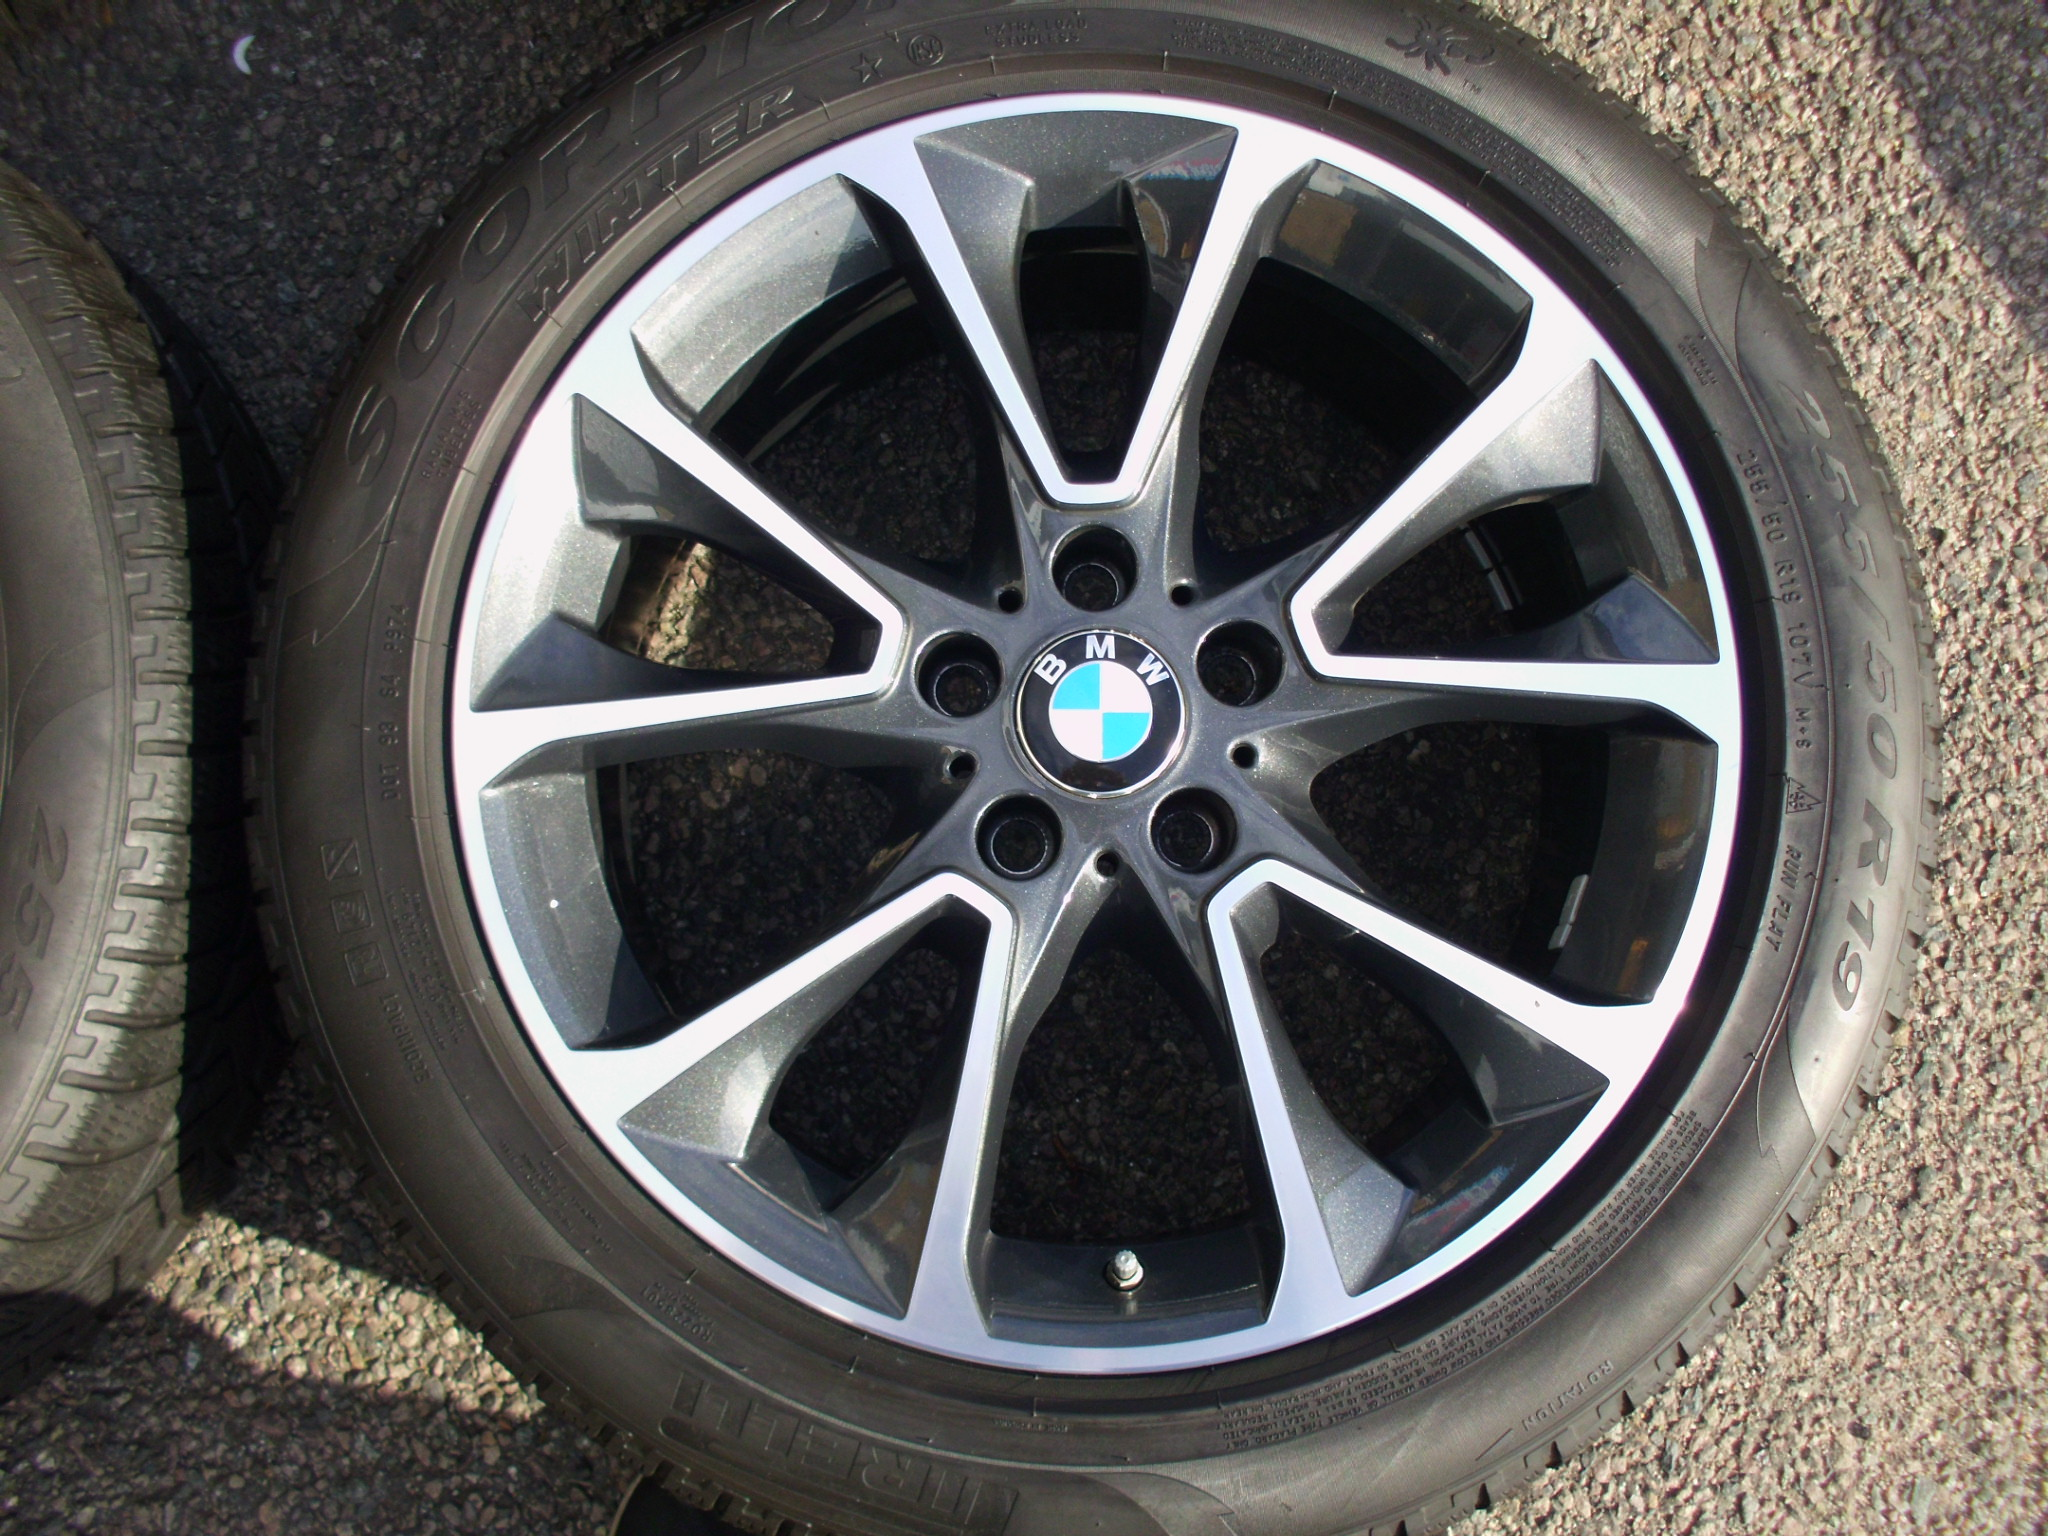 "USED 19"" GENUINE STYLE 449 F15 X5 U SPOKE ALLOYS, VGC,WITH MATCHING PIRELLI RUNFLAT WINTER TYRES"